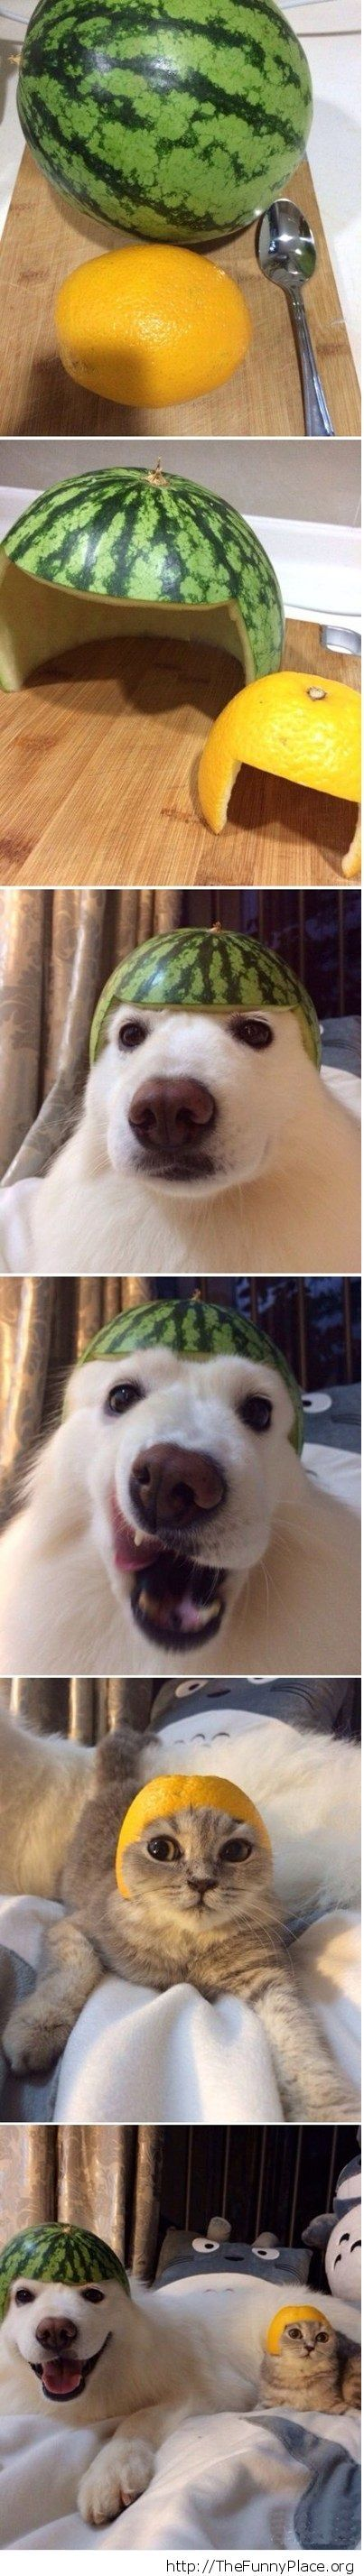 Dog and cat wearing funny hats